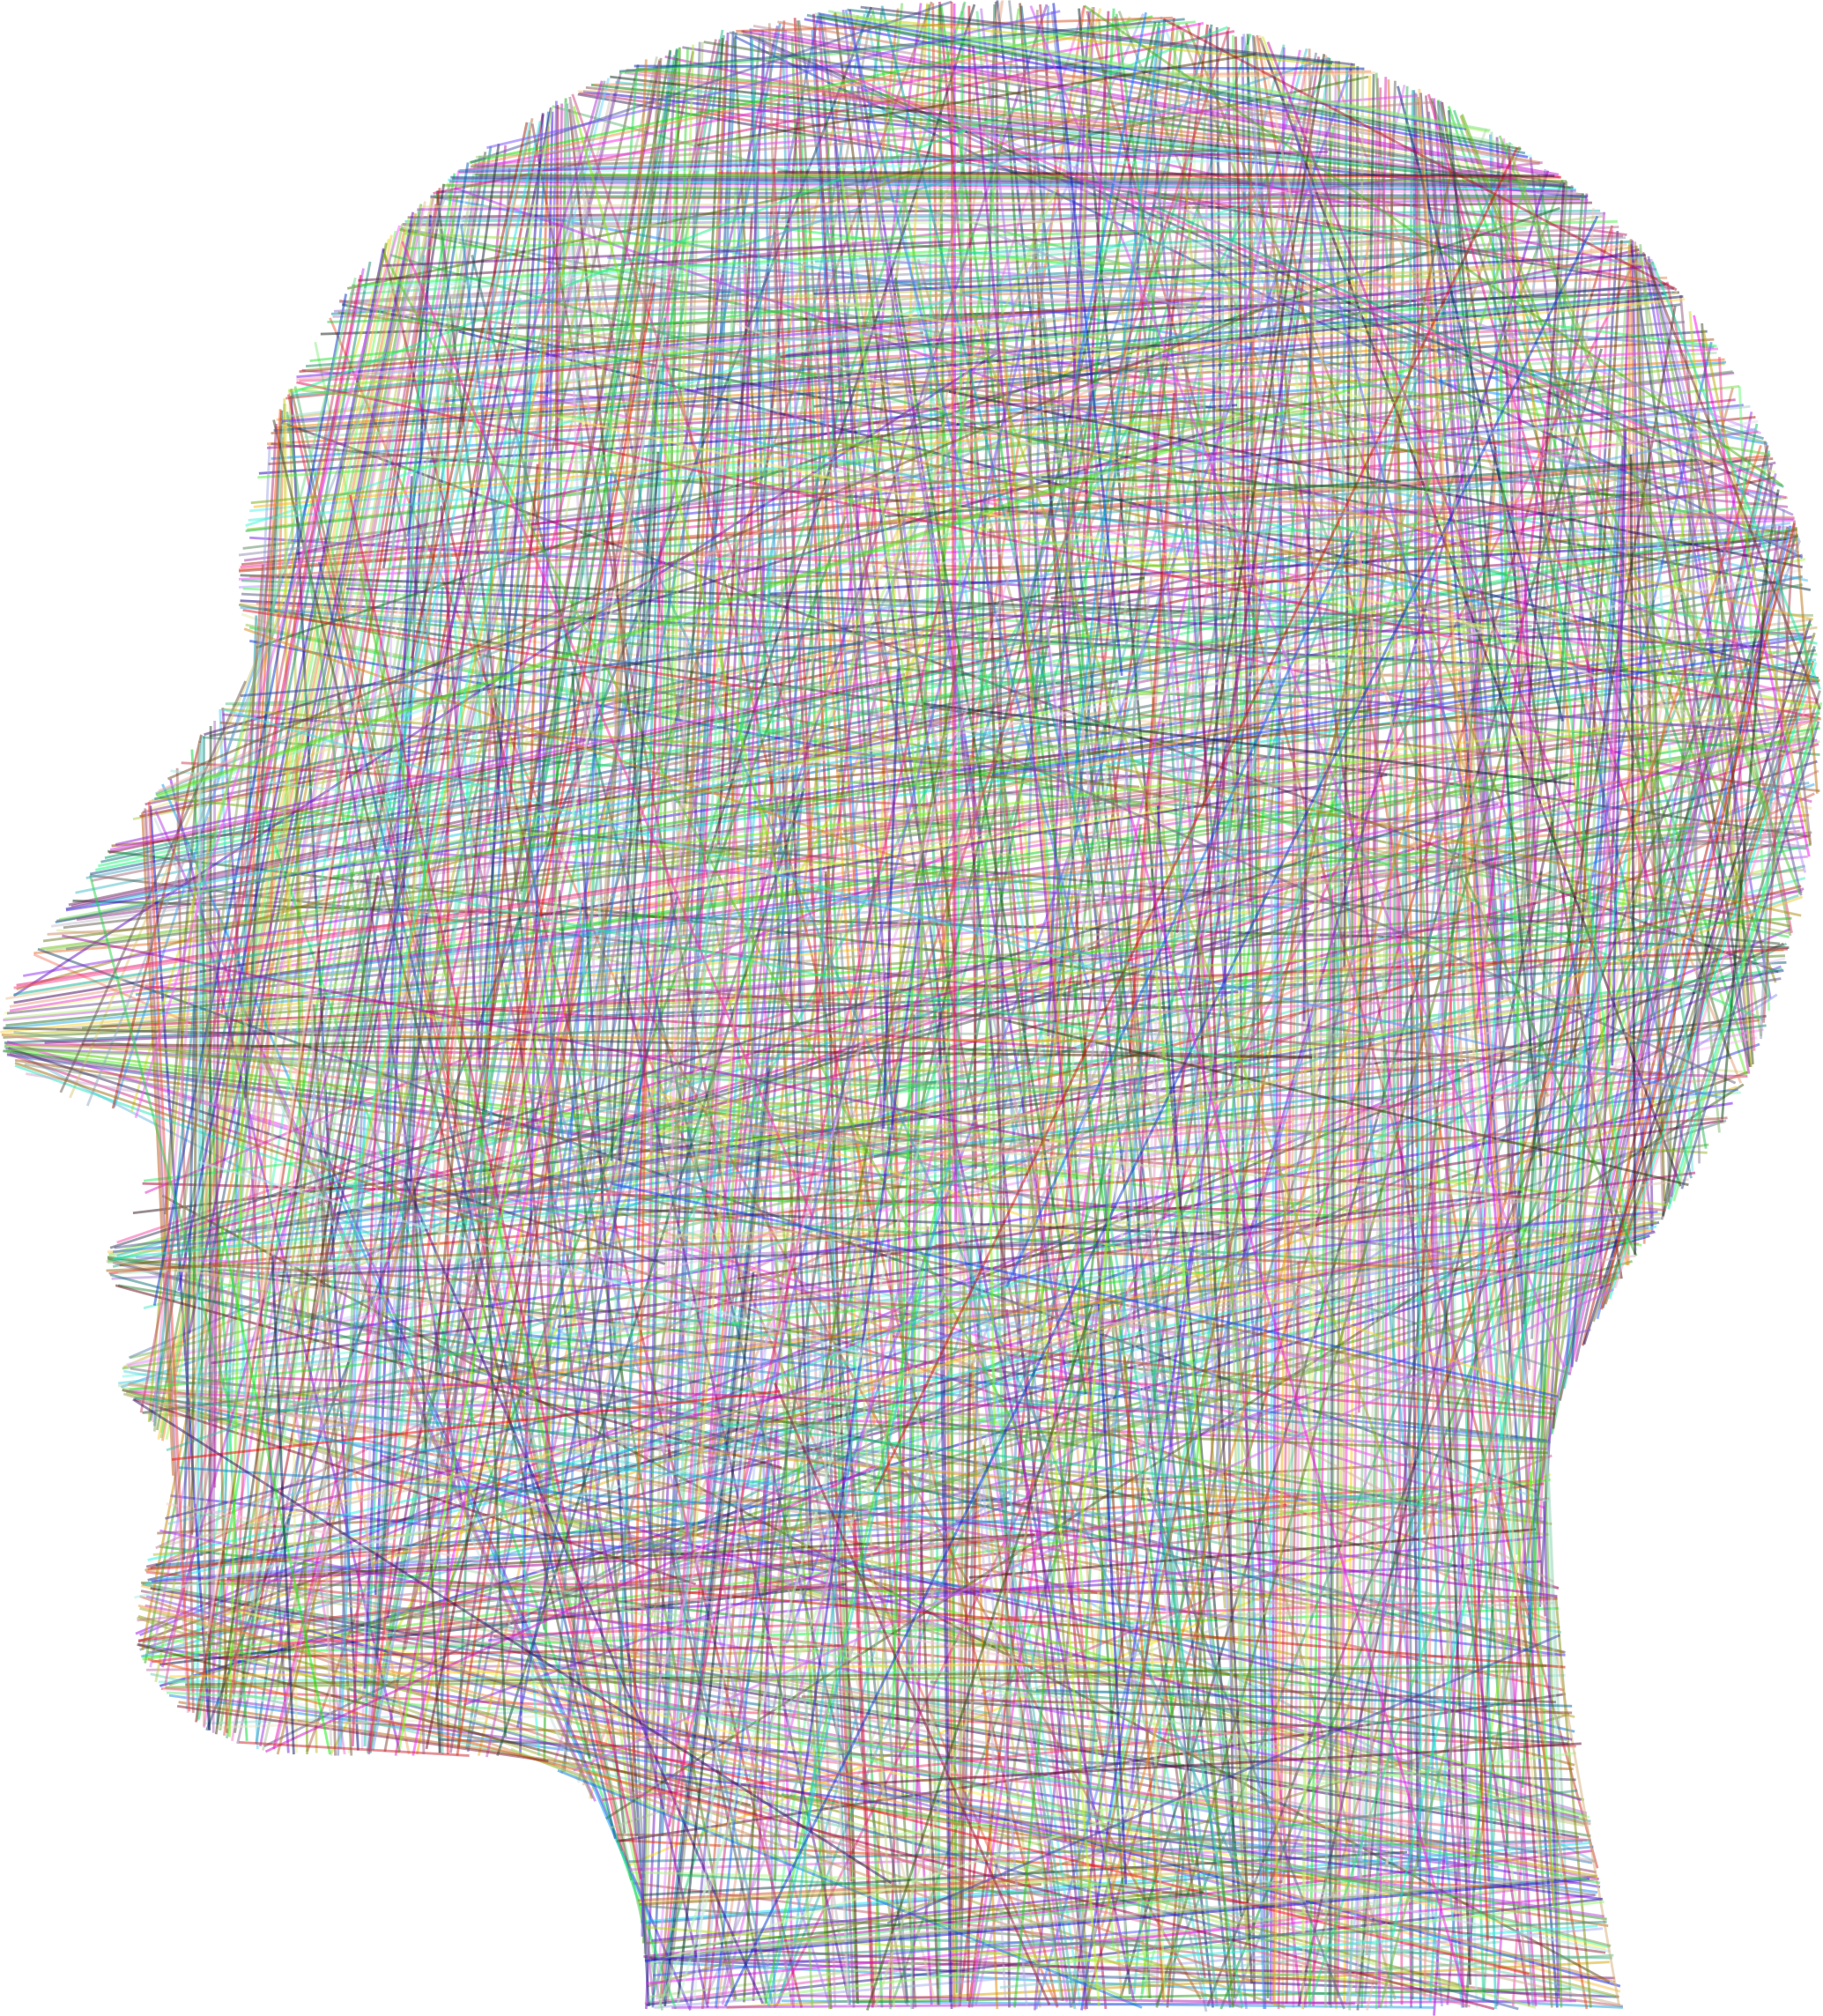 Man Head Silhouette Geometric Lines Prismatic by GDJ